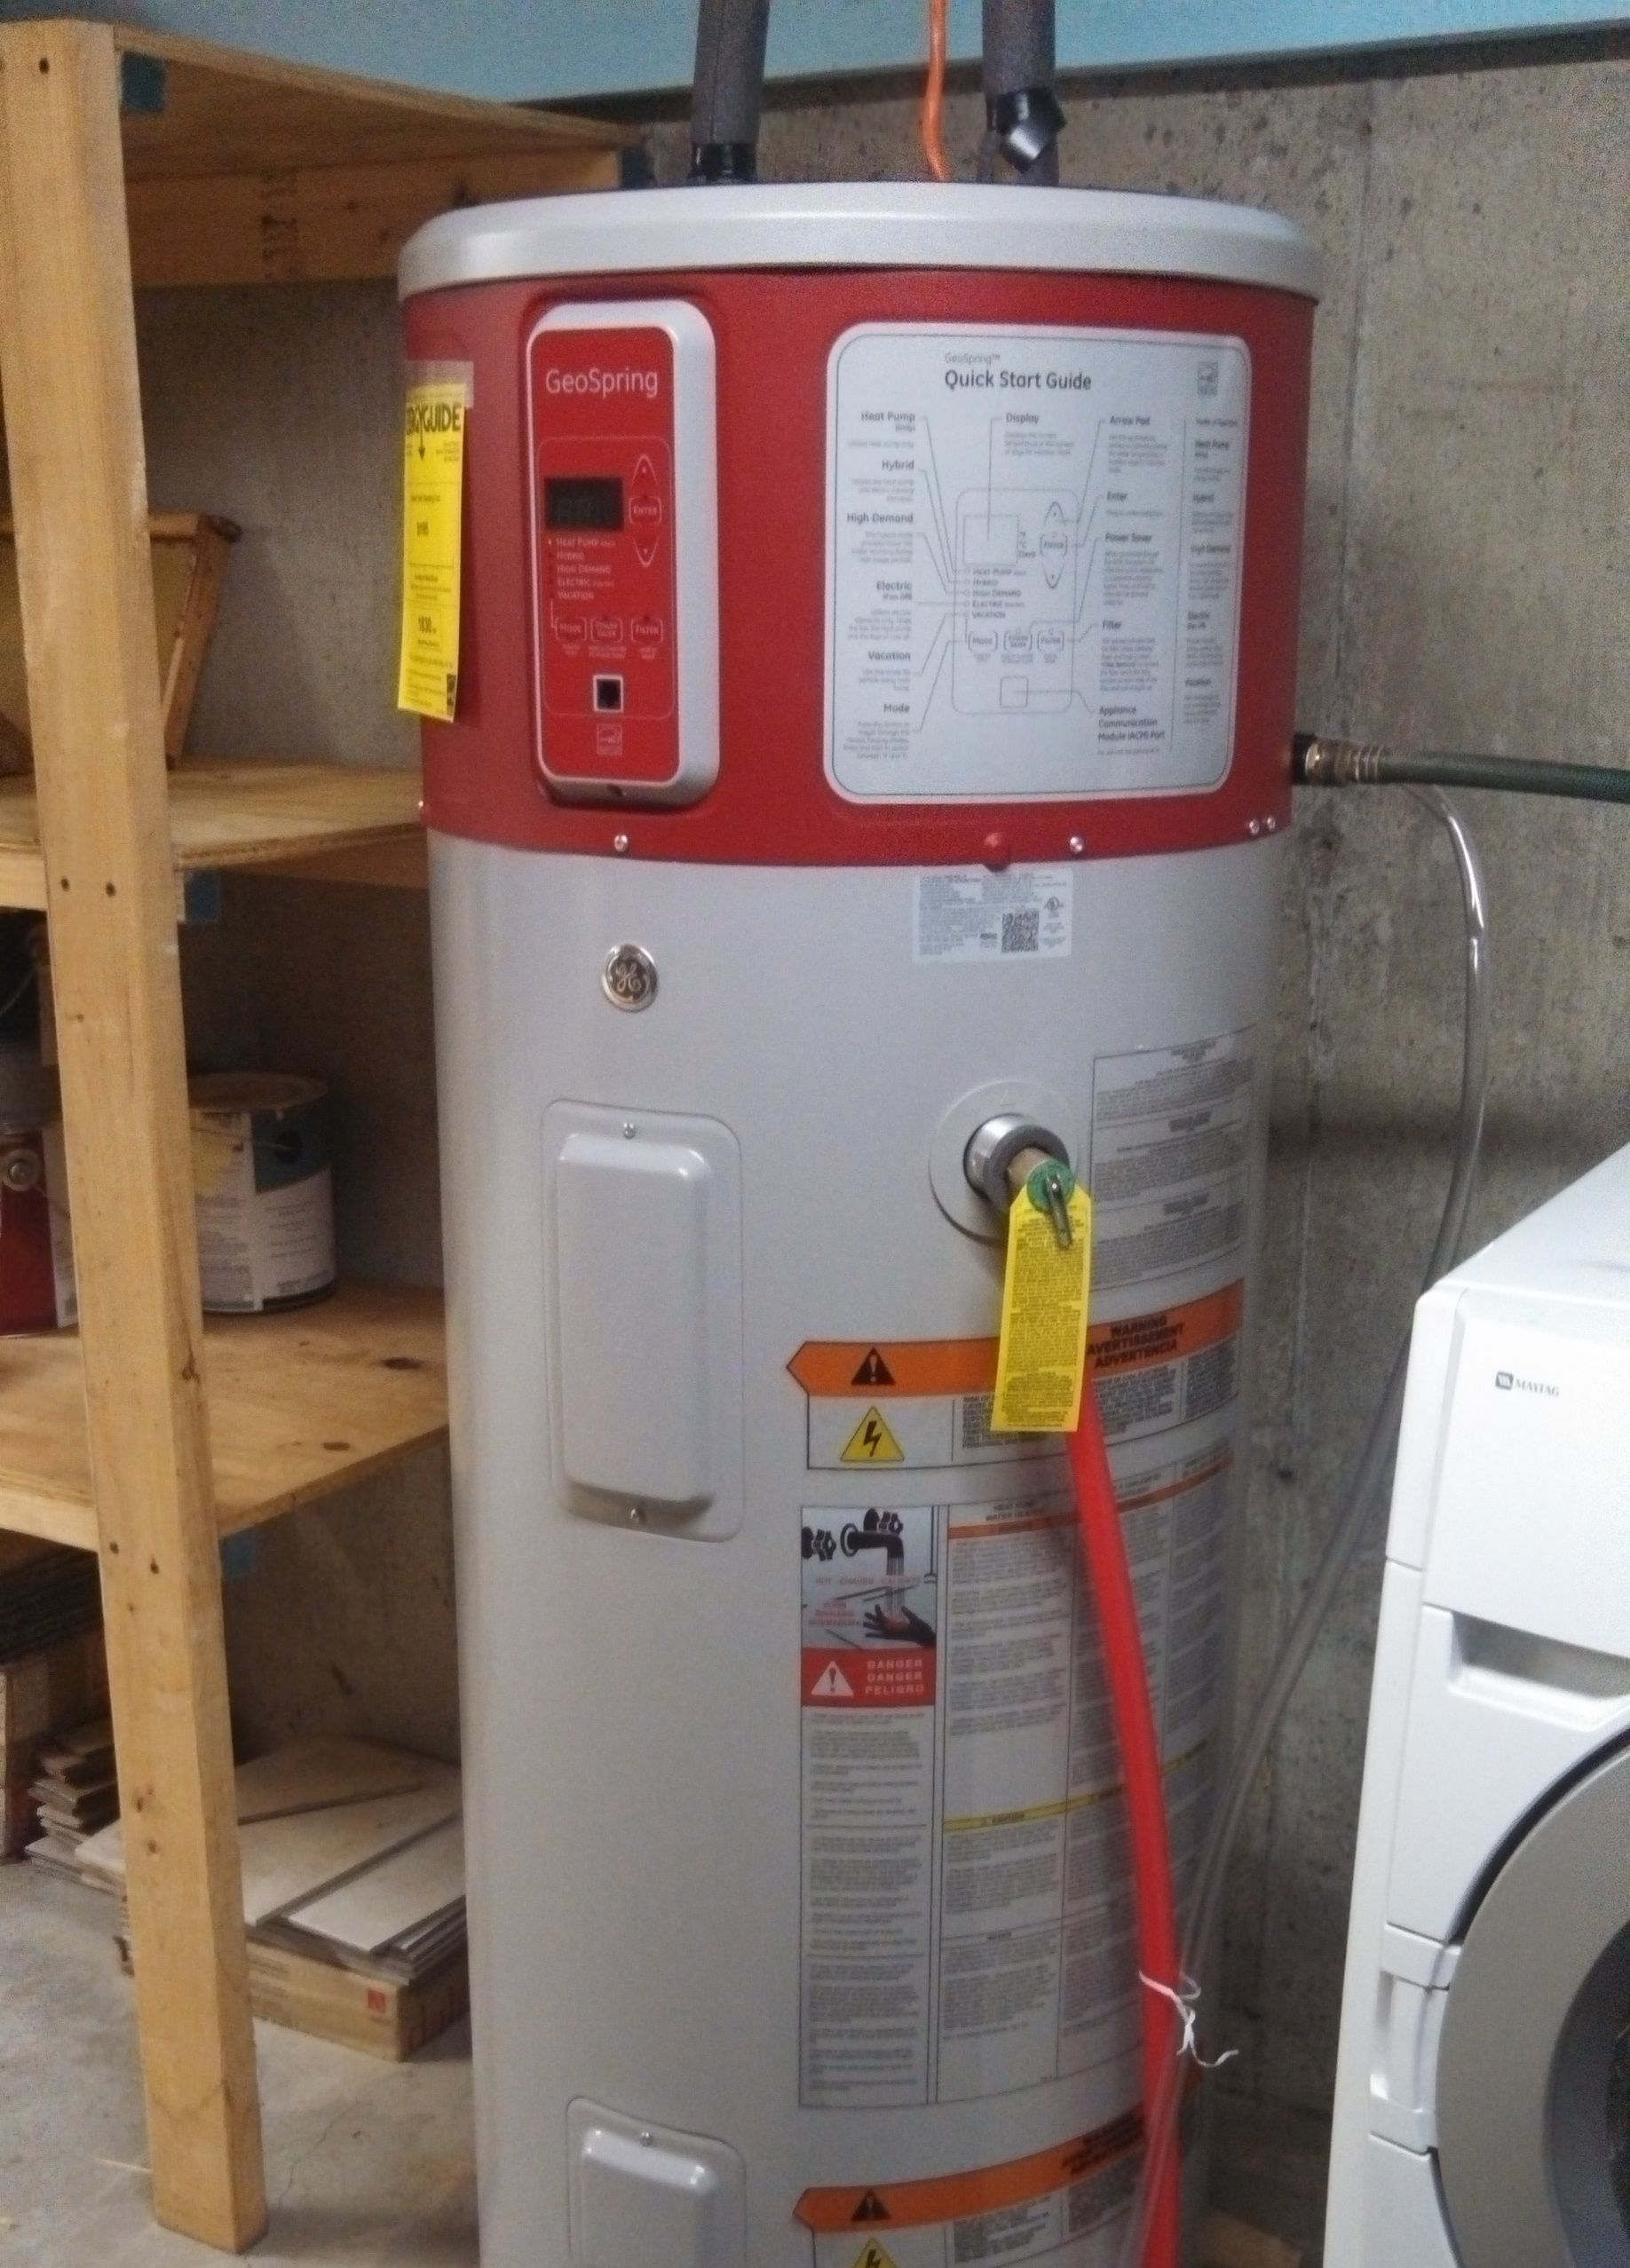 Heat Pump Water Heaters With Images Heat Pump Water Heater Water Heater Repair Water Heater